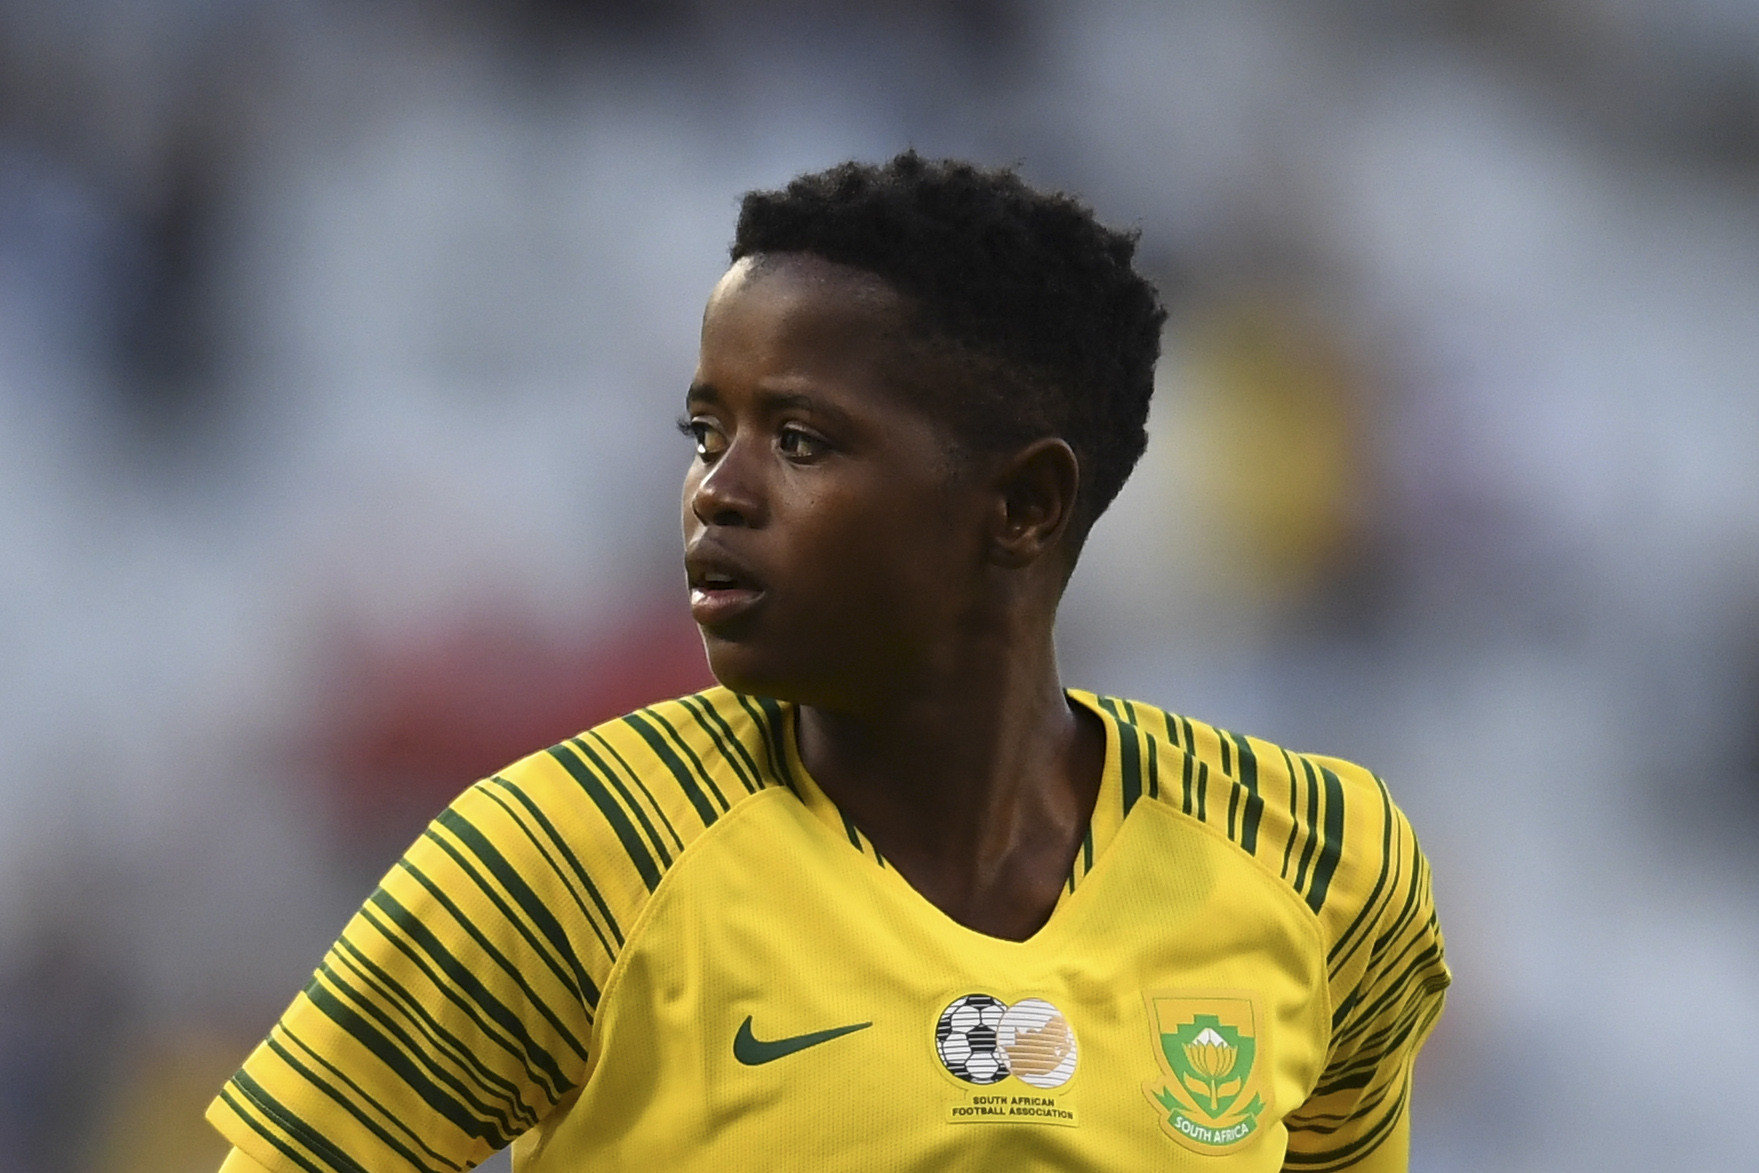 22 January 2019: South Africa's Lebohang Ramalepe during the Albertina Sisulu Challenge against Sweden at Cape Town Stadium. The game ended in a 0-0 draw. (Photograph by Ashley Vlotman/Gallo Images)